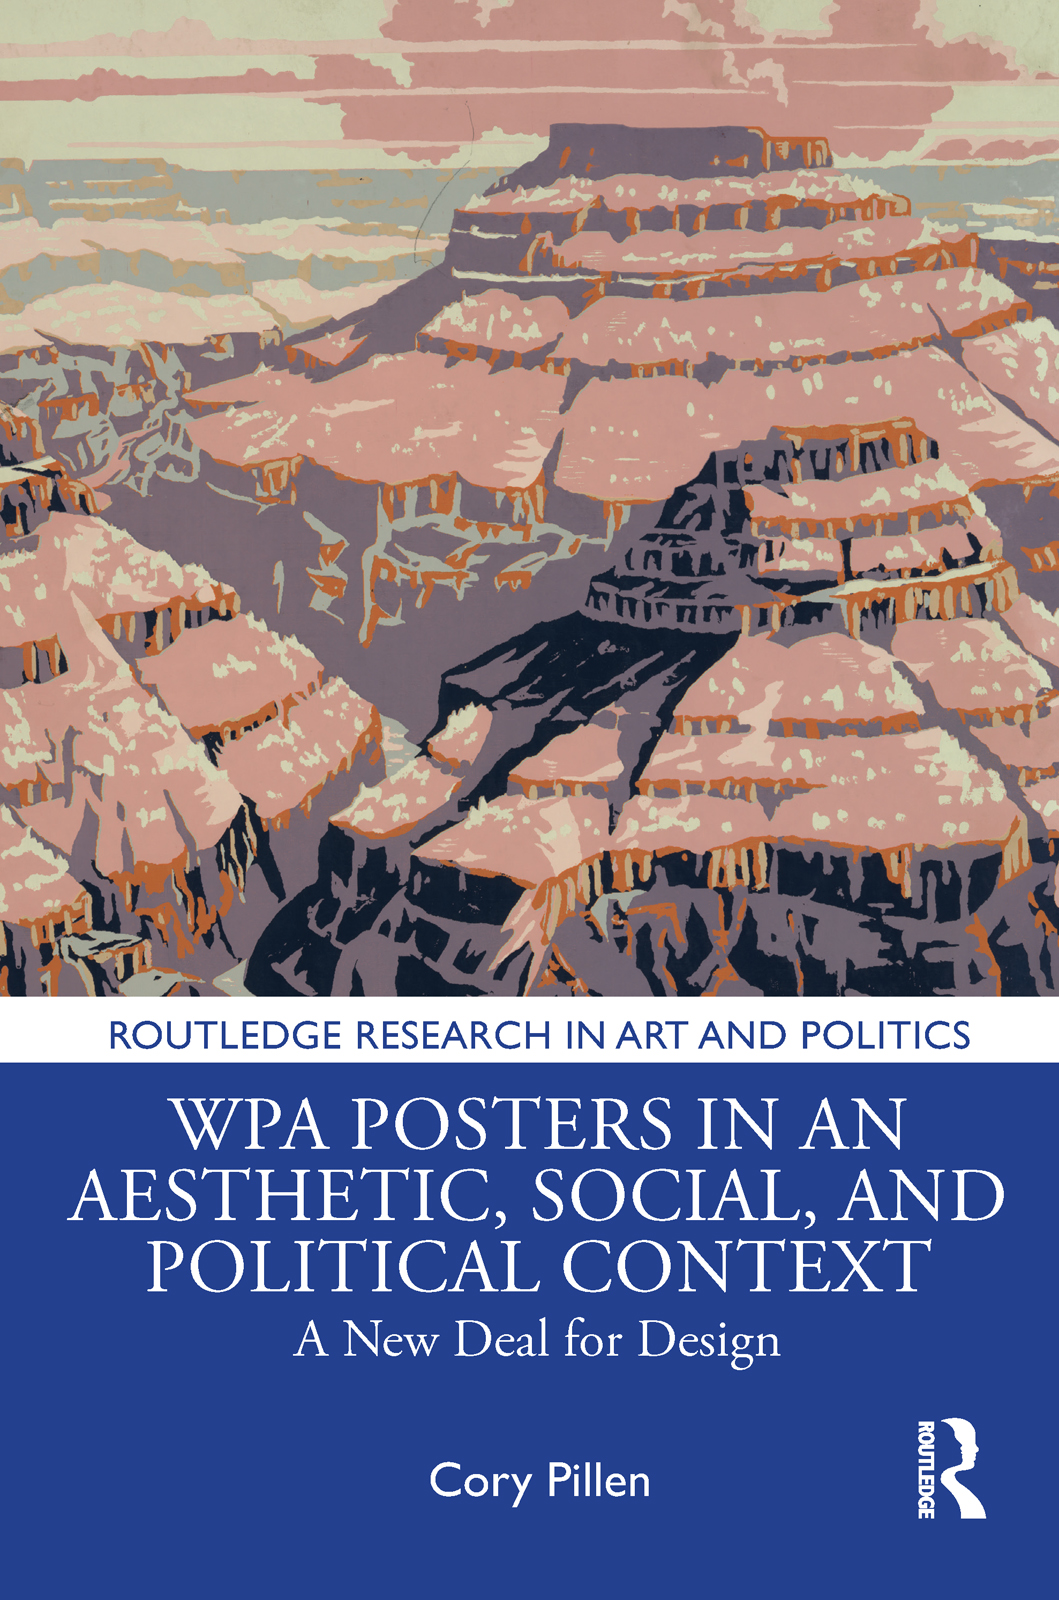 wpa posters in an aesthetic social and political context a new deal for design